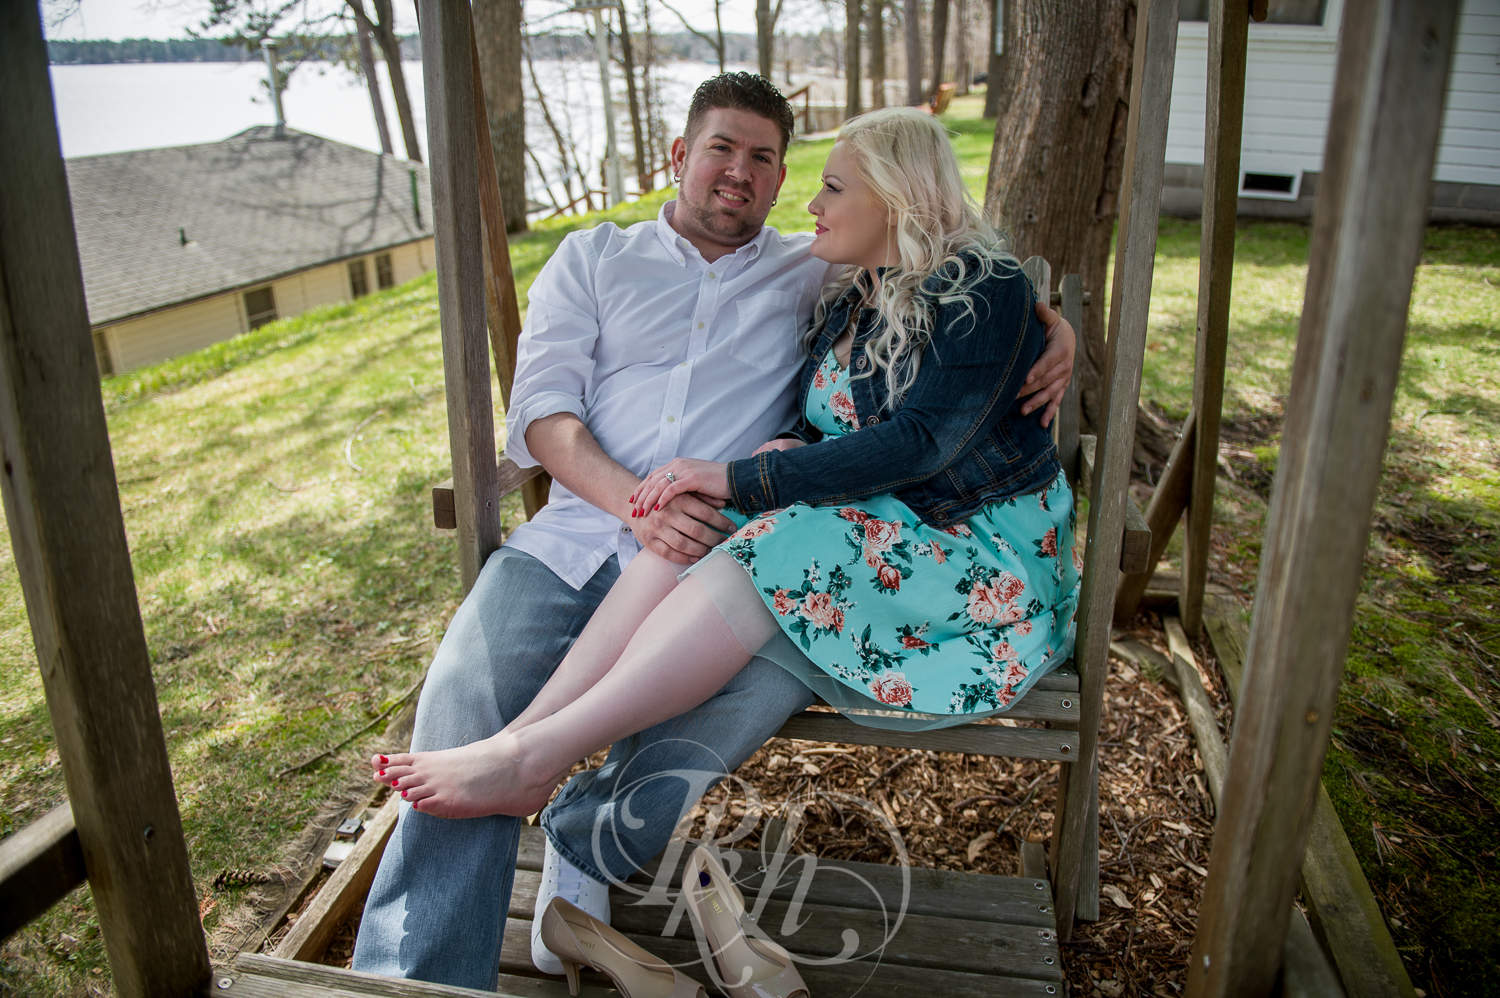 Erica & Shawn - Minnesota Engagement Photography - RKH Images -5.jpg